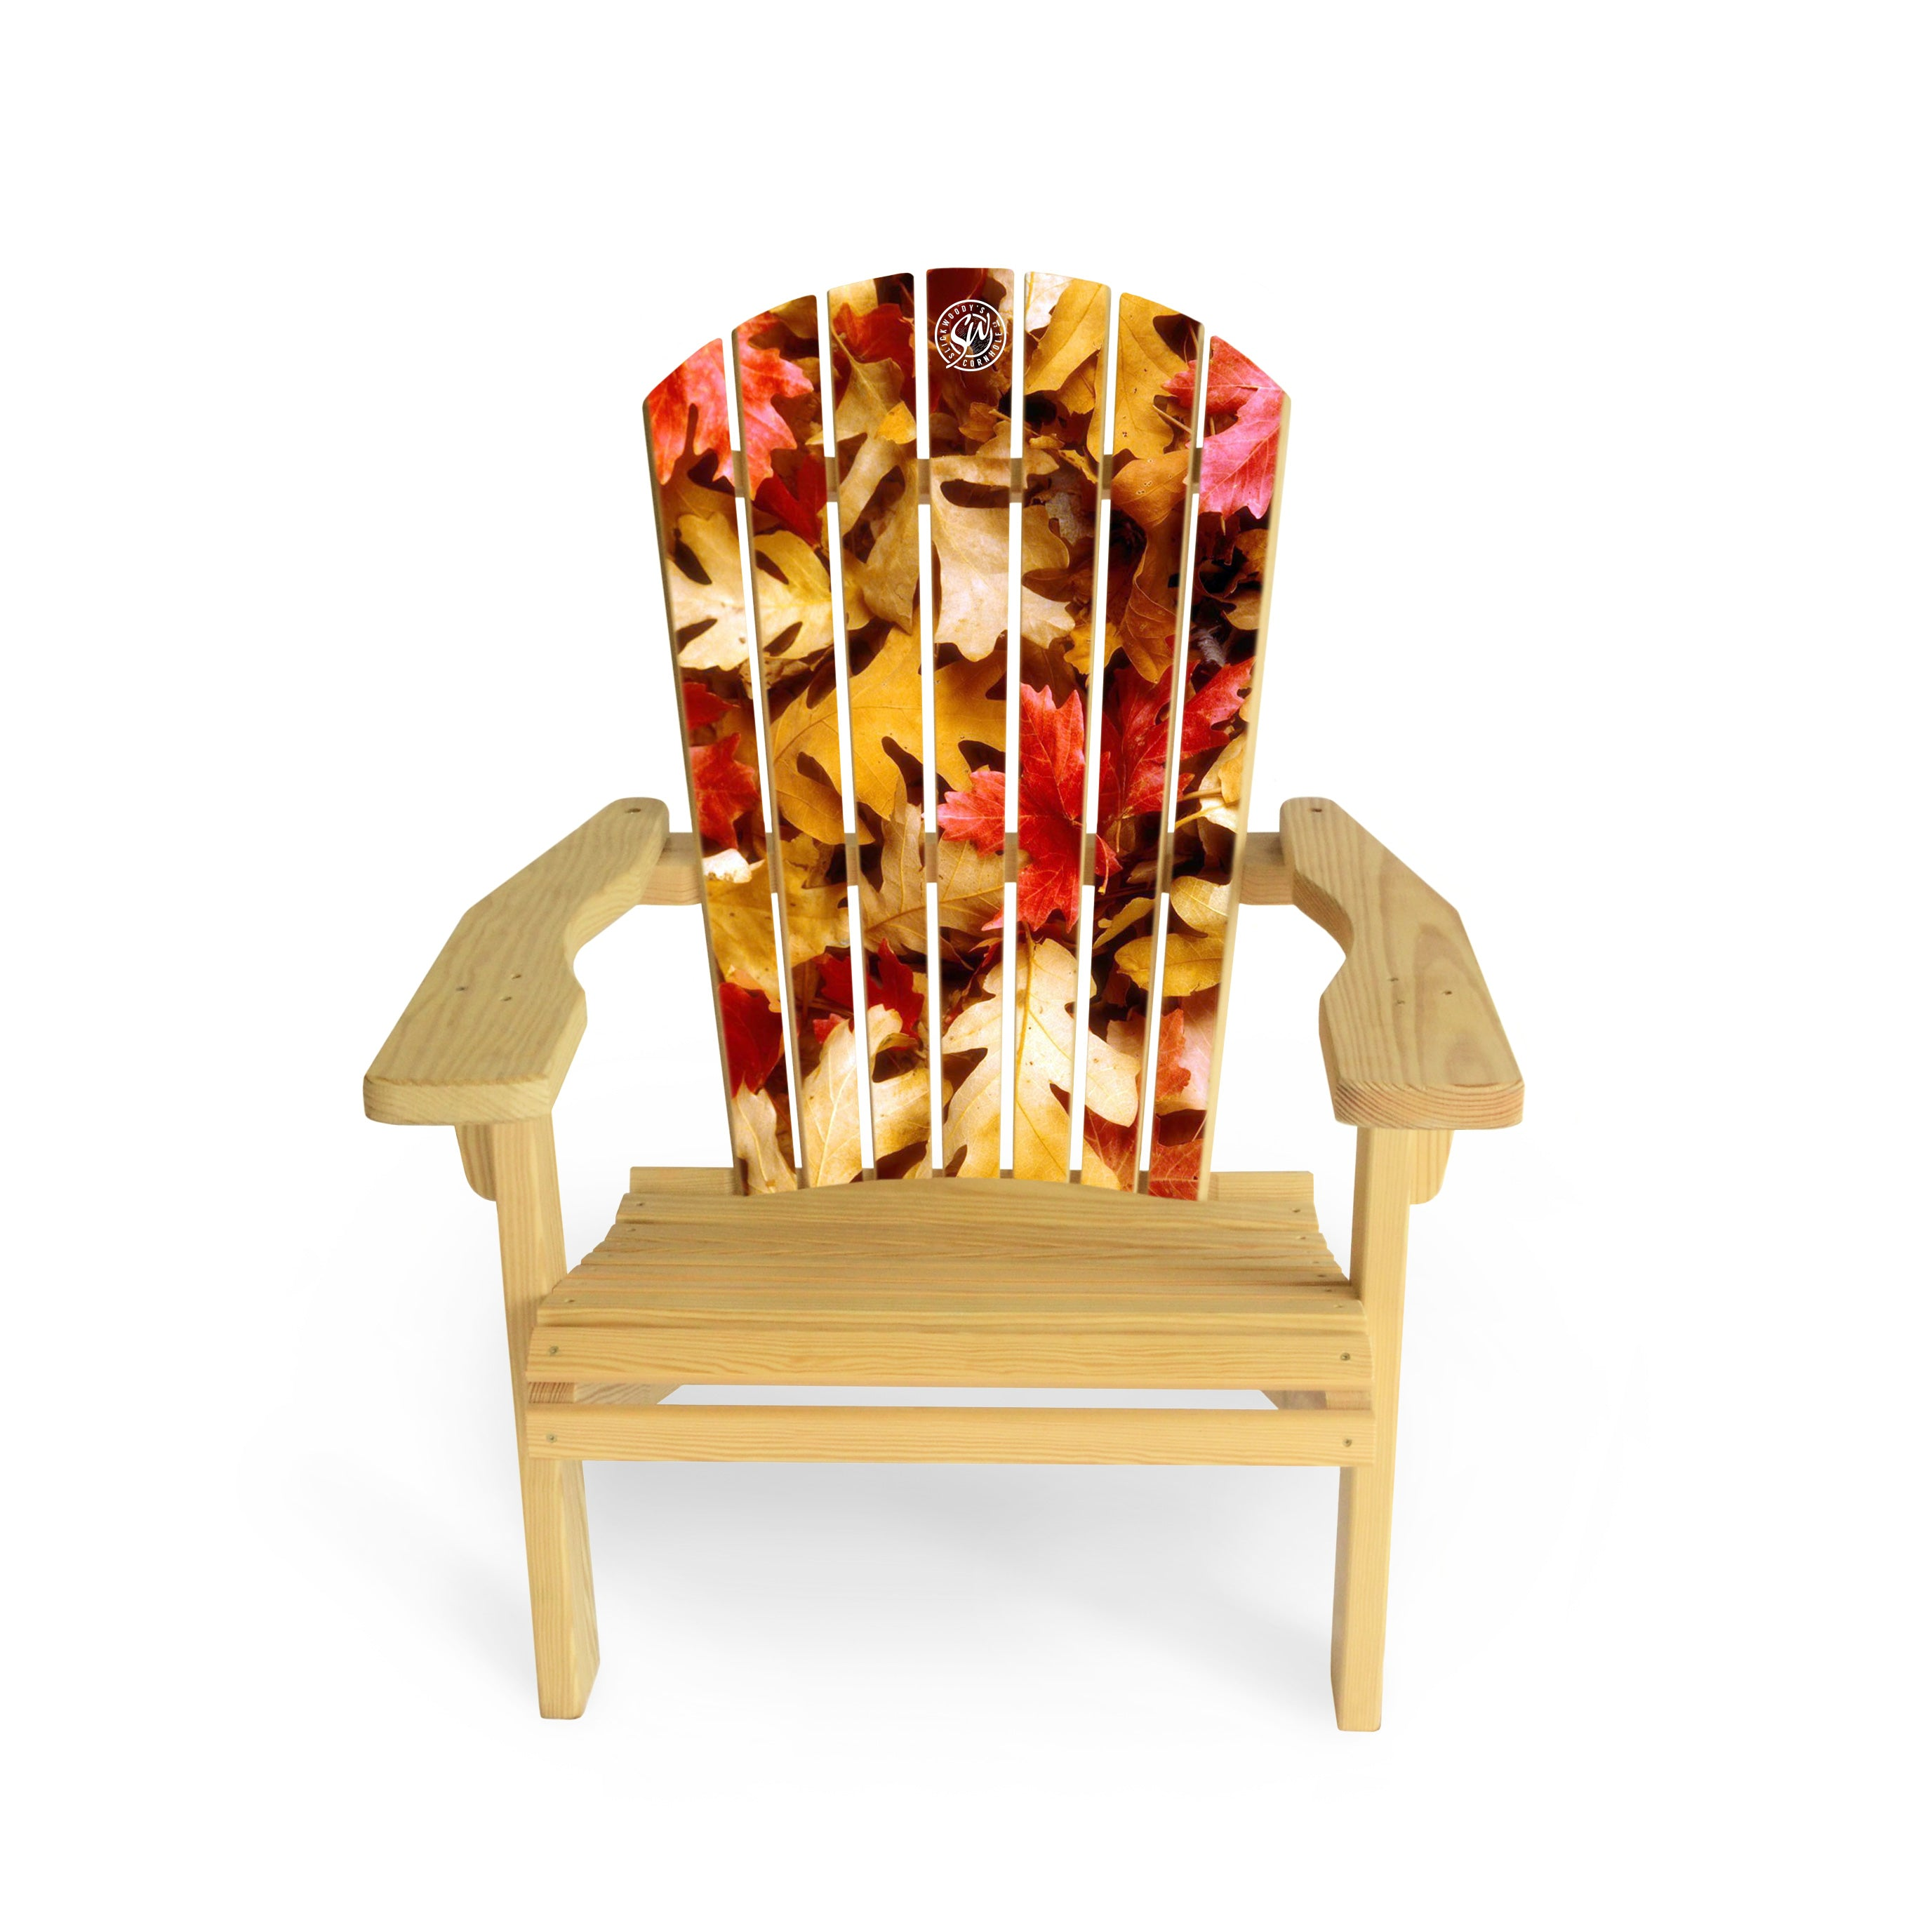 Adirondack Chairs Are An Awesome Piece Of Furniture That Can Be A Huge  Upgrade To Any Backyard Or Patio. These Chairs Are Extremely Comfortable  And Also ...